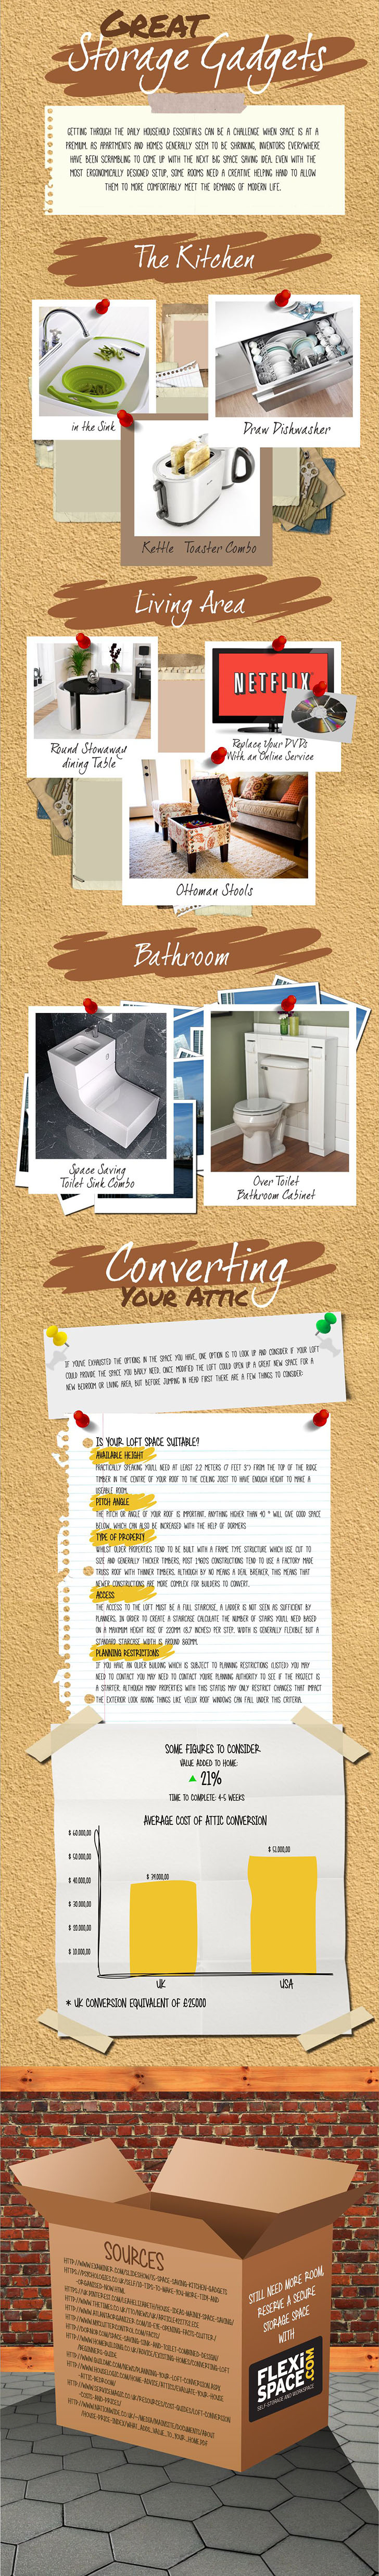 infographic, saving space, eliminating clutter, home cleaning, space saving ideas, how to save space, how to clean, reducing clutter, cleaning tips, clutter tips, flexispace, space savers encyclopedia, reader submission